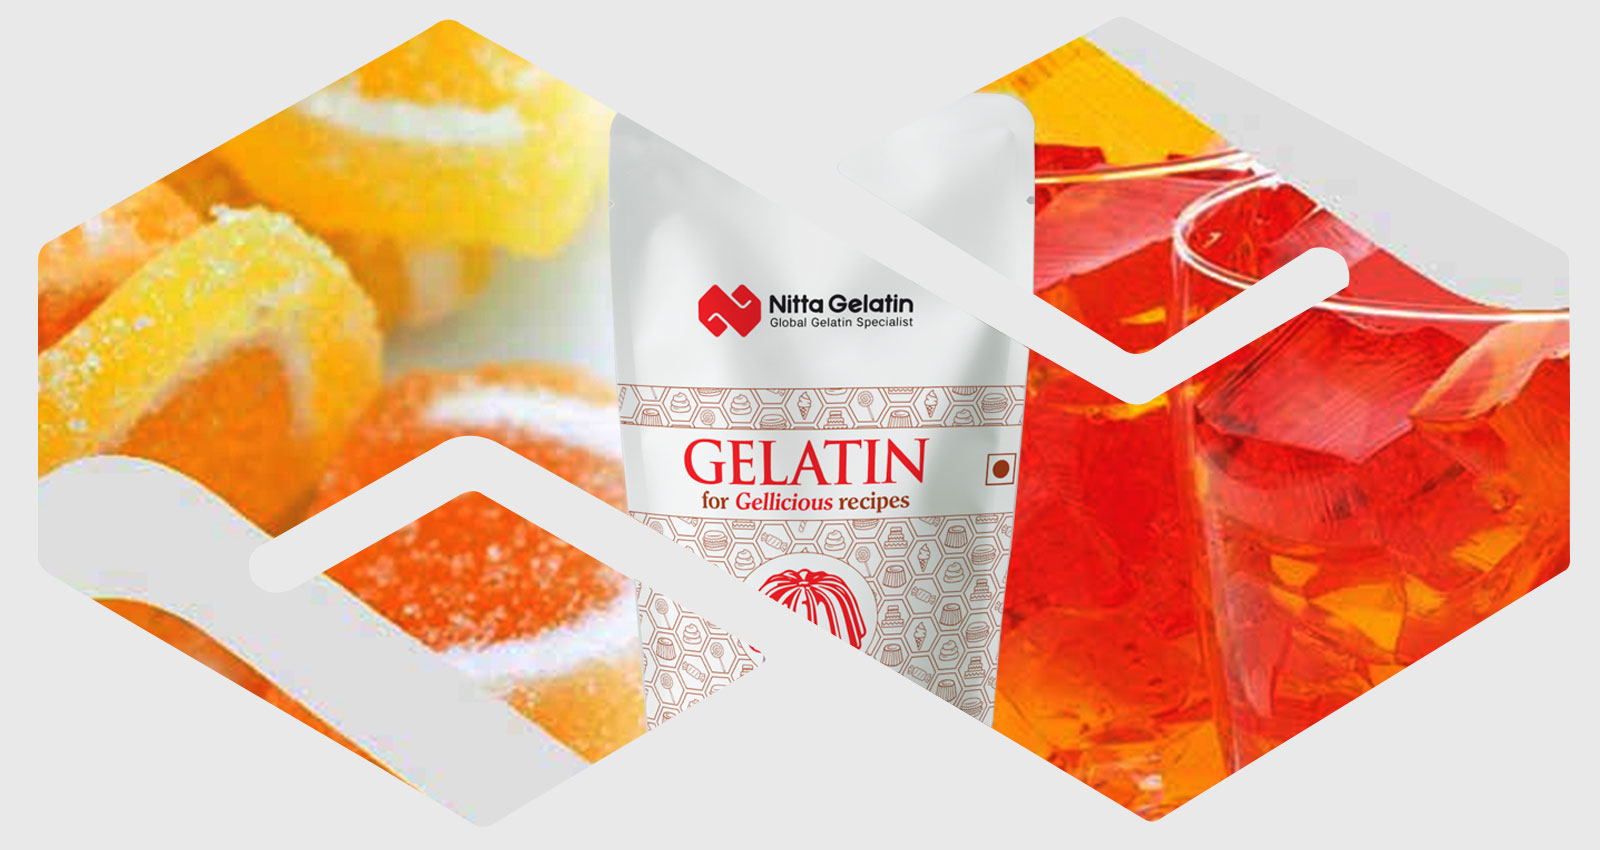 Gelatin for |Gellicious Recipes